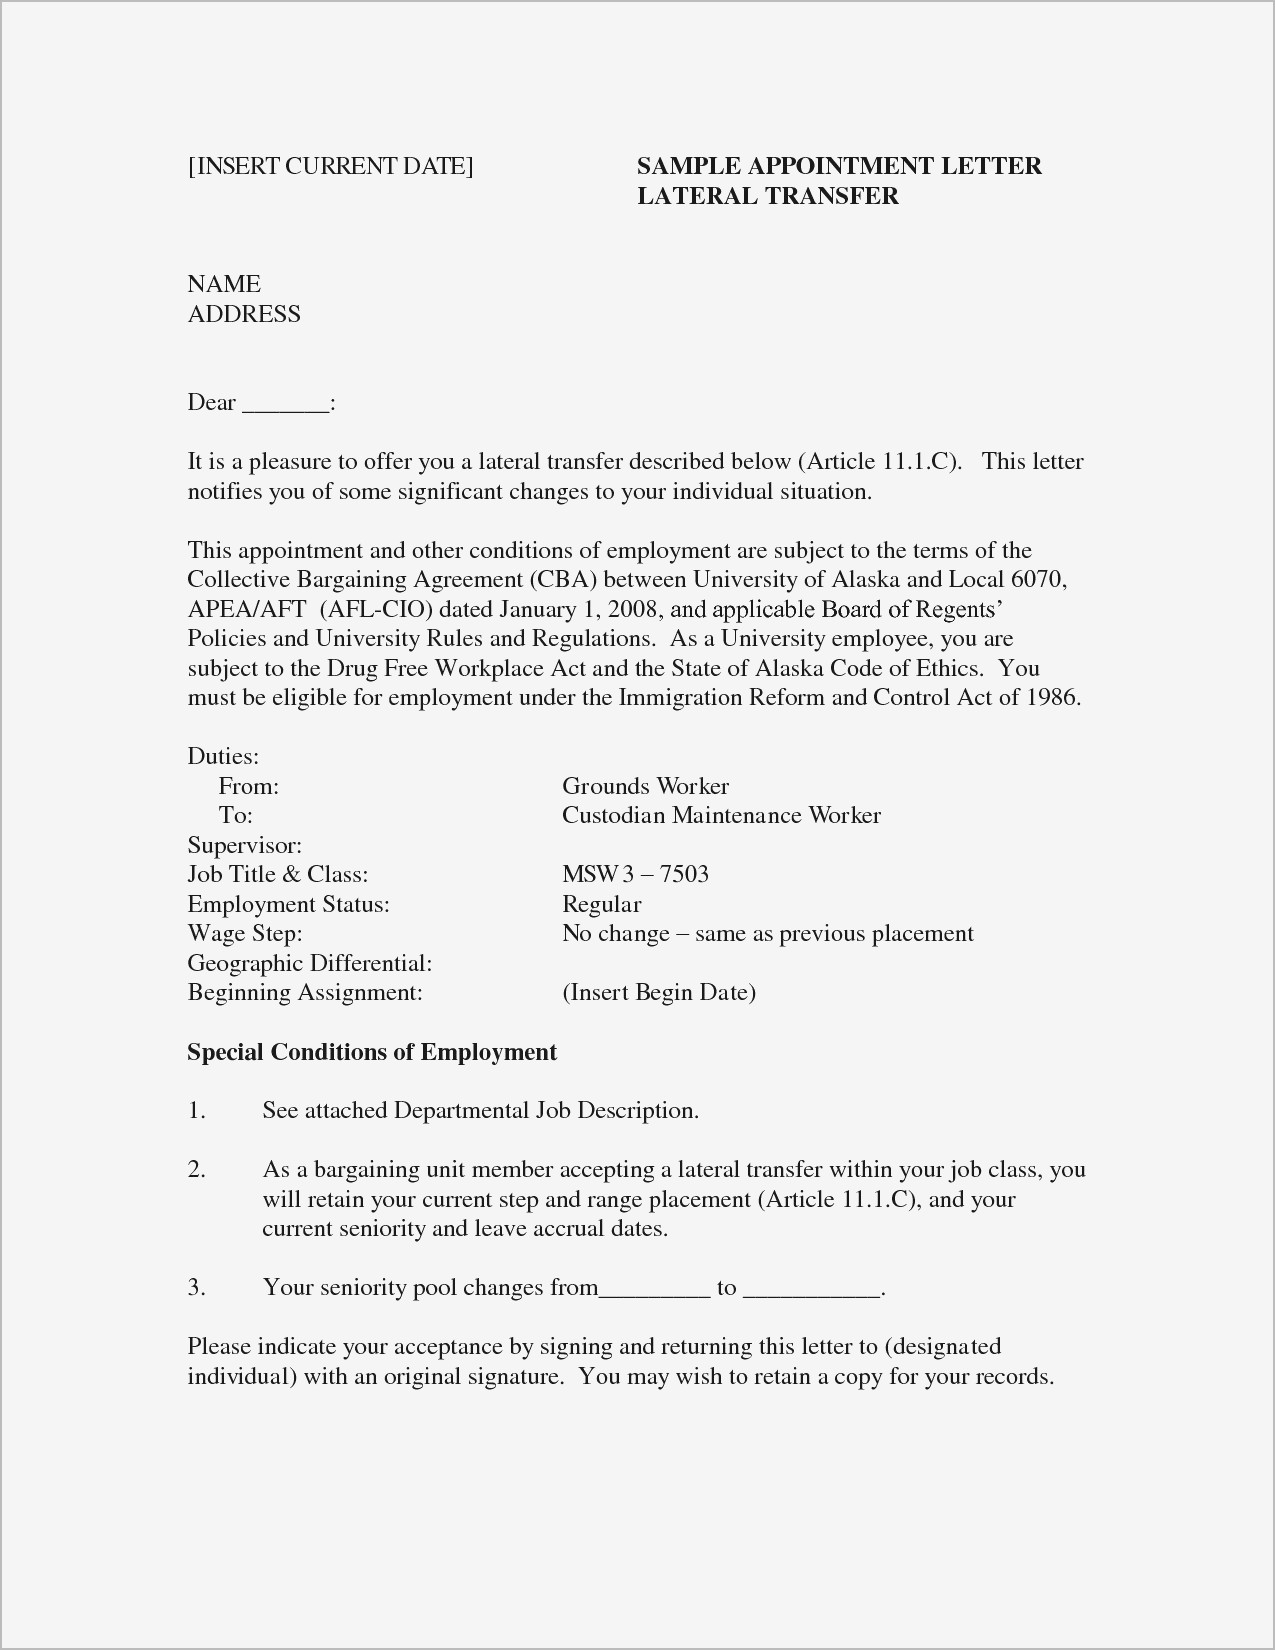 Proof of employment letter template word examples letter templates proof of employment letter template word cover letter examples for job samples maxwellsz